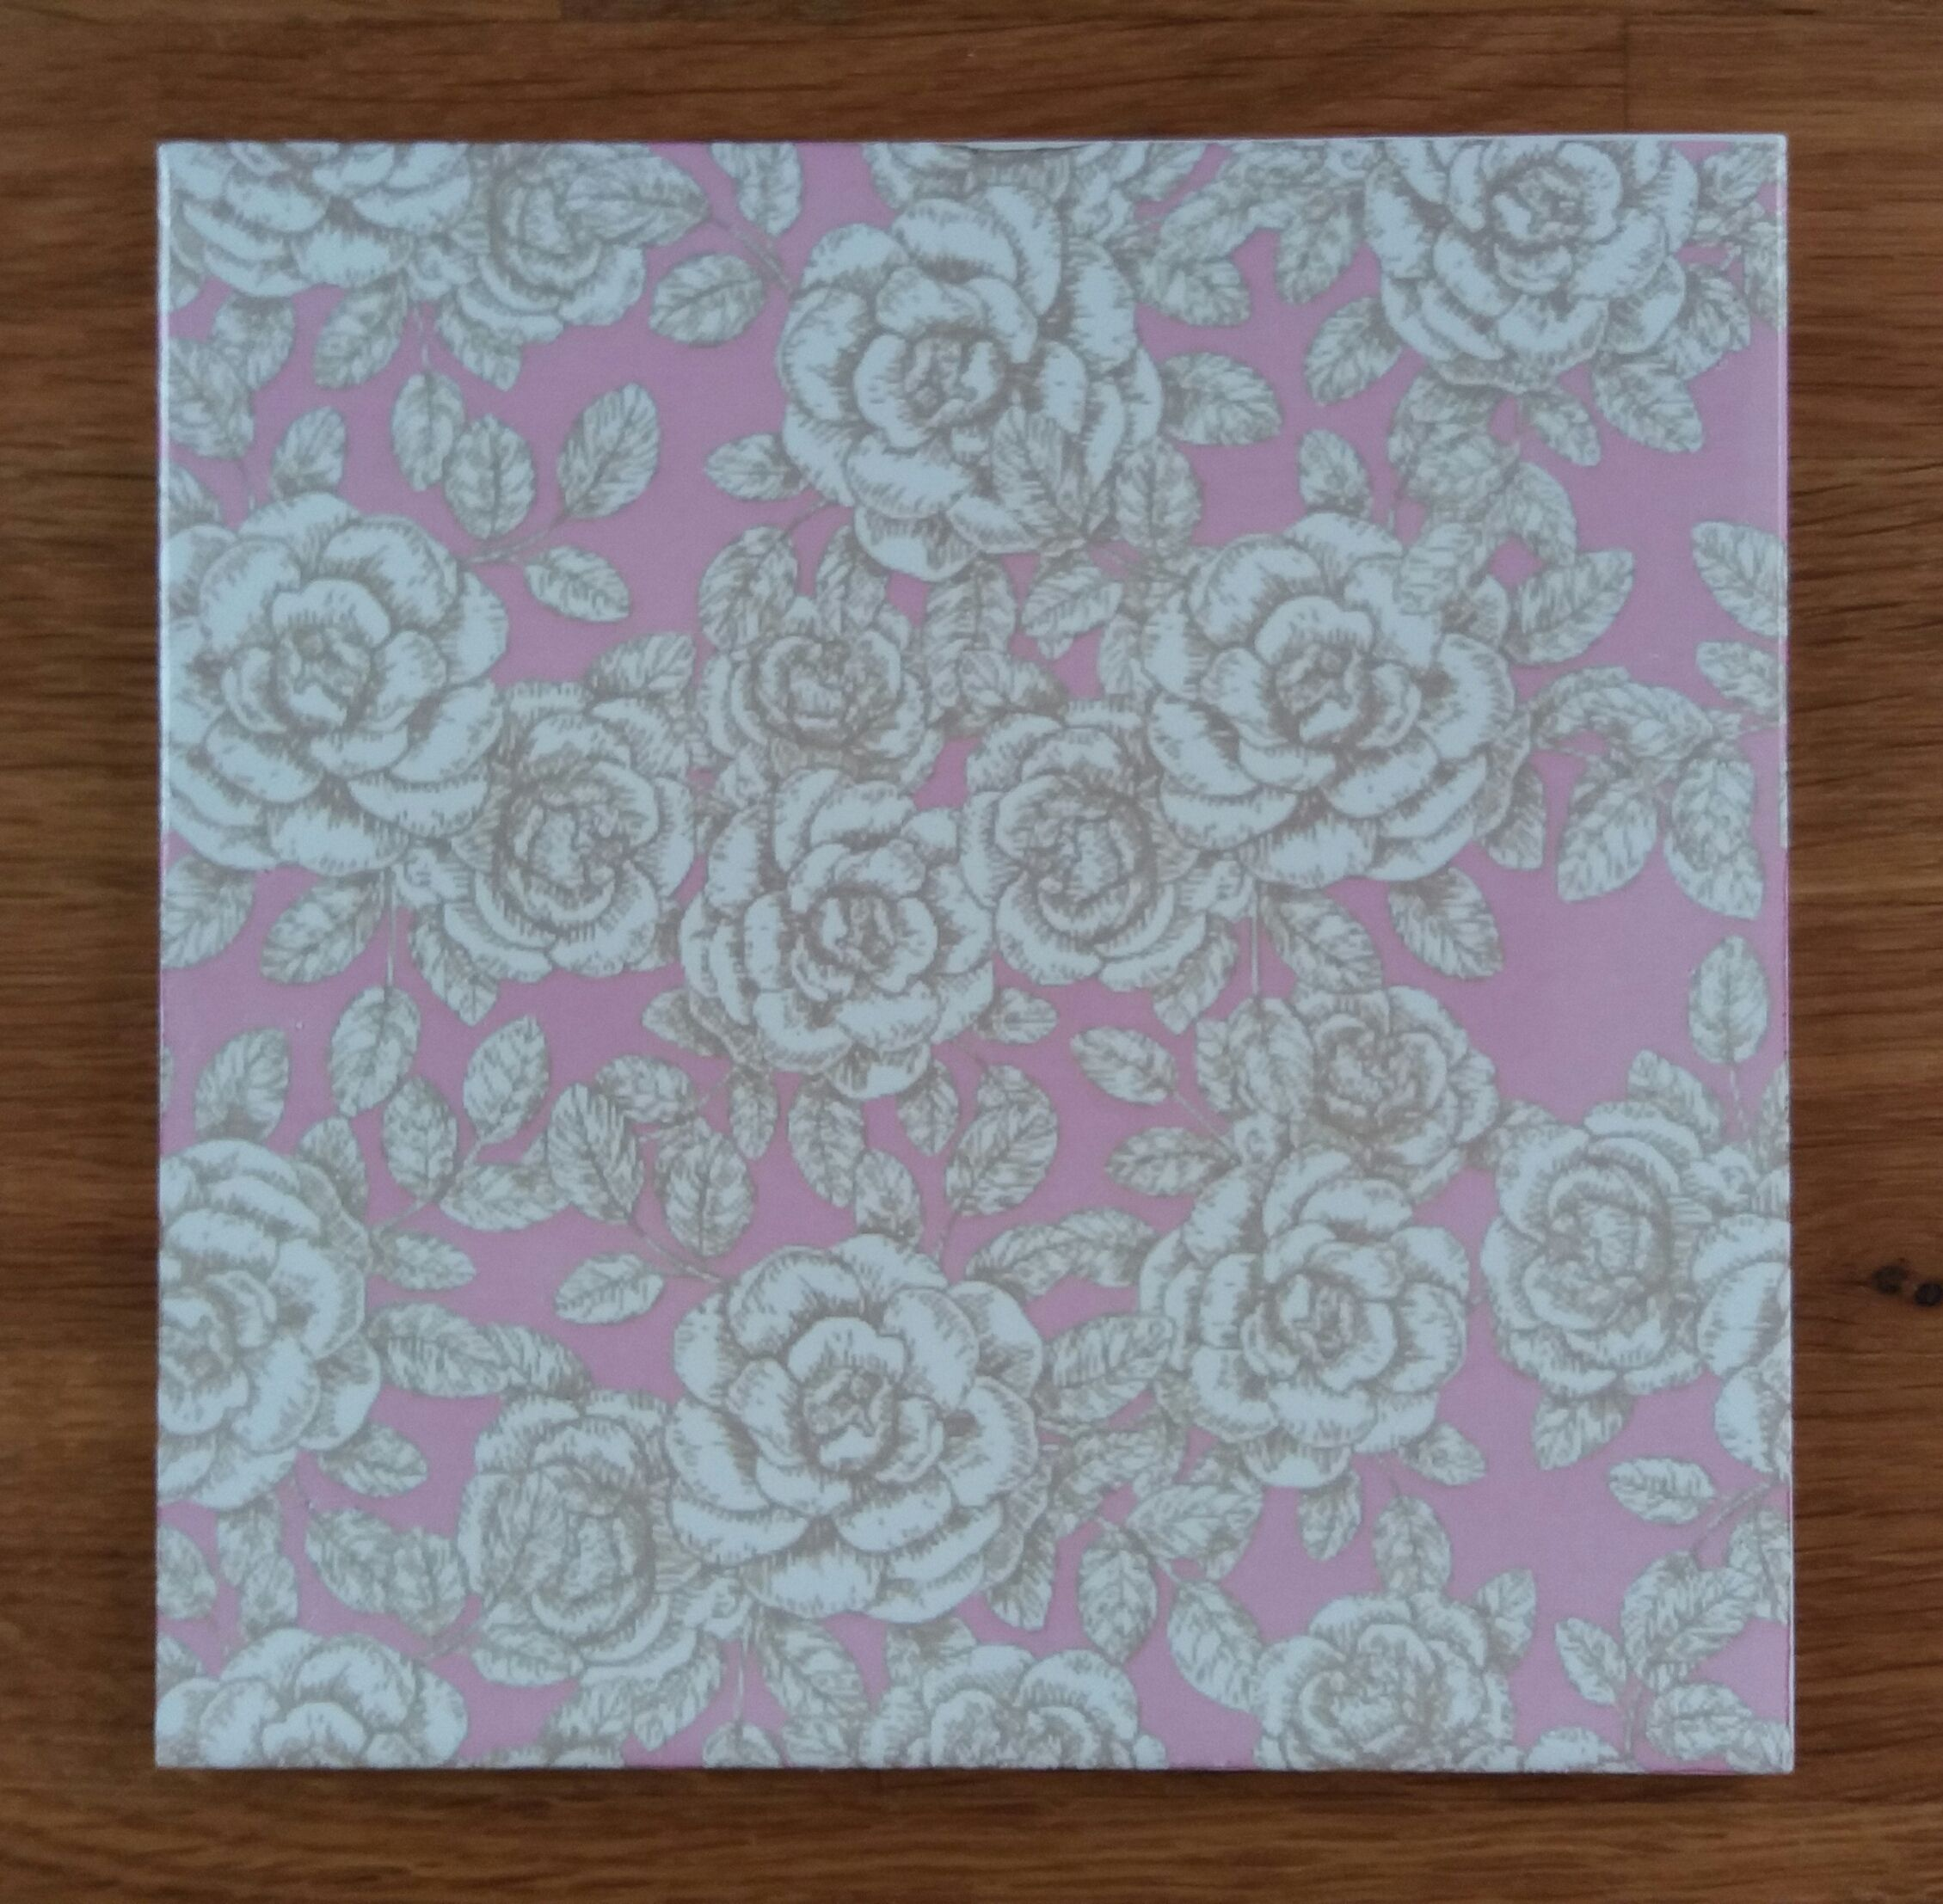 Pink and white floral patterned decorative ceramic wall tile by pink and white floral patterned decorative ceramic wall tile by floral tiles british made doublecrazyfo Gallery